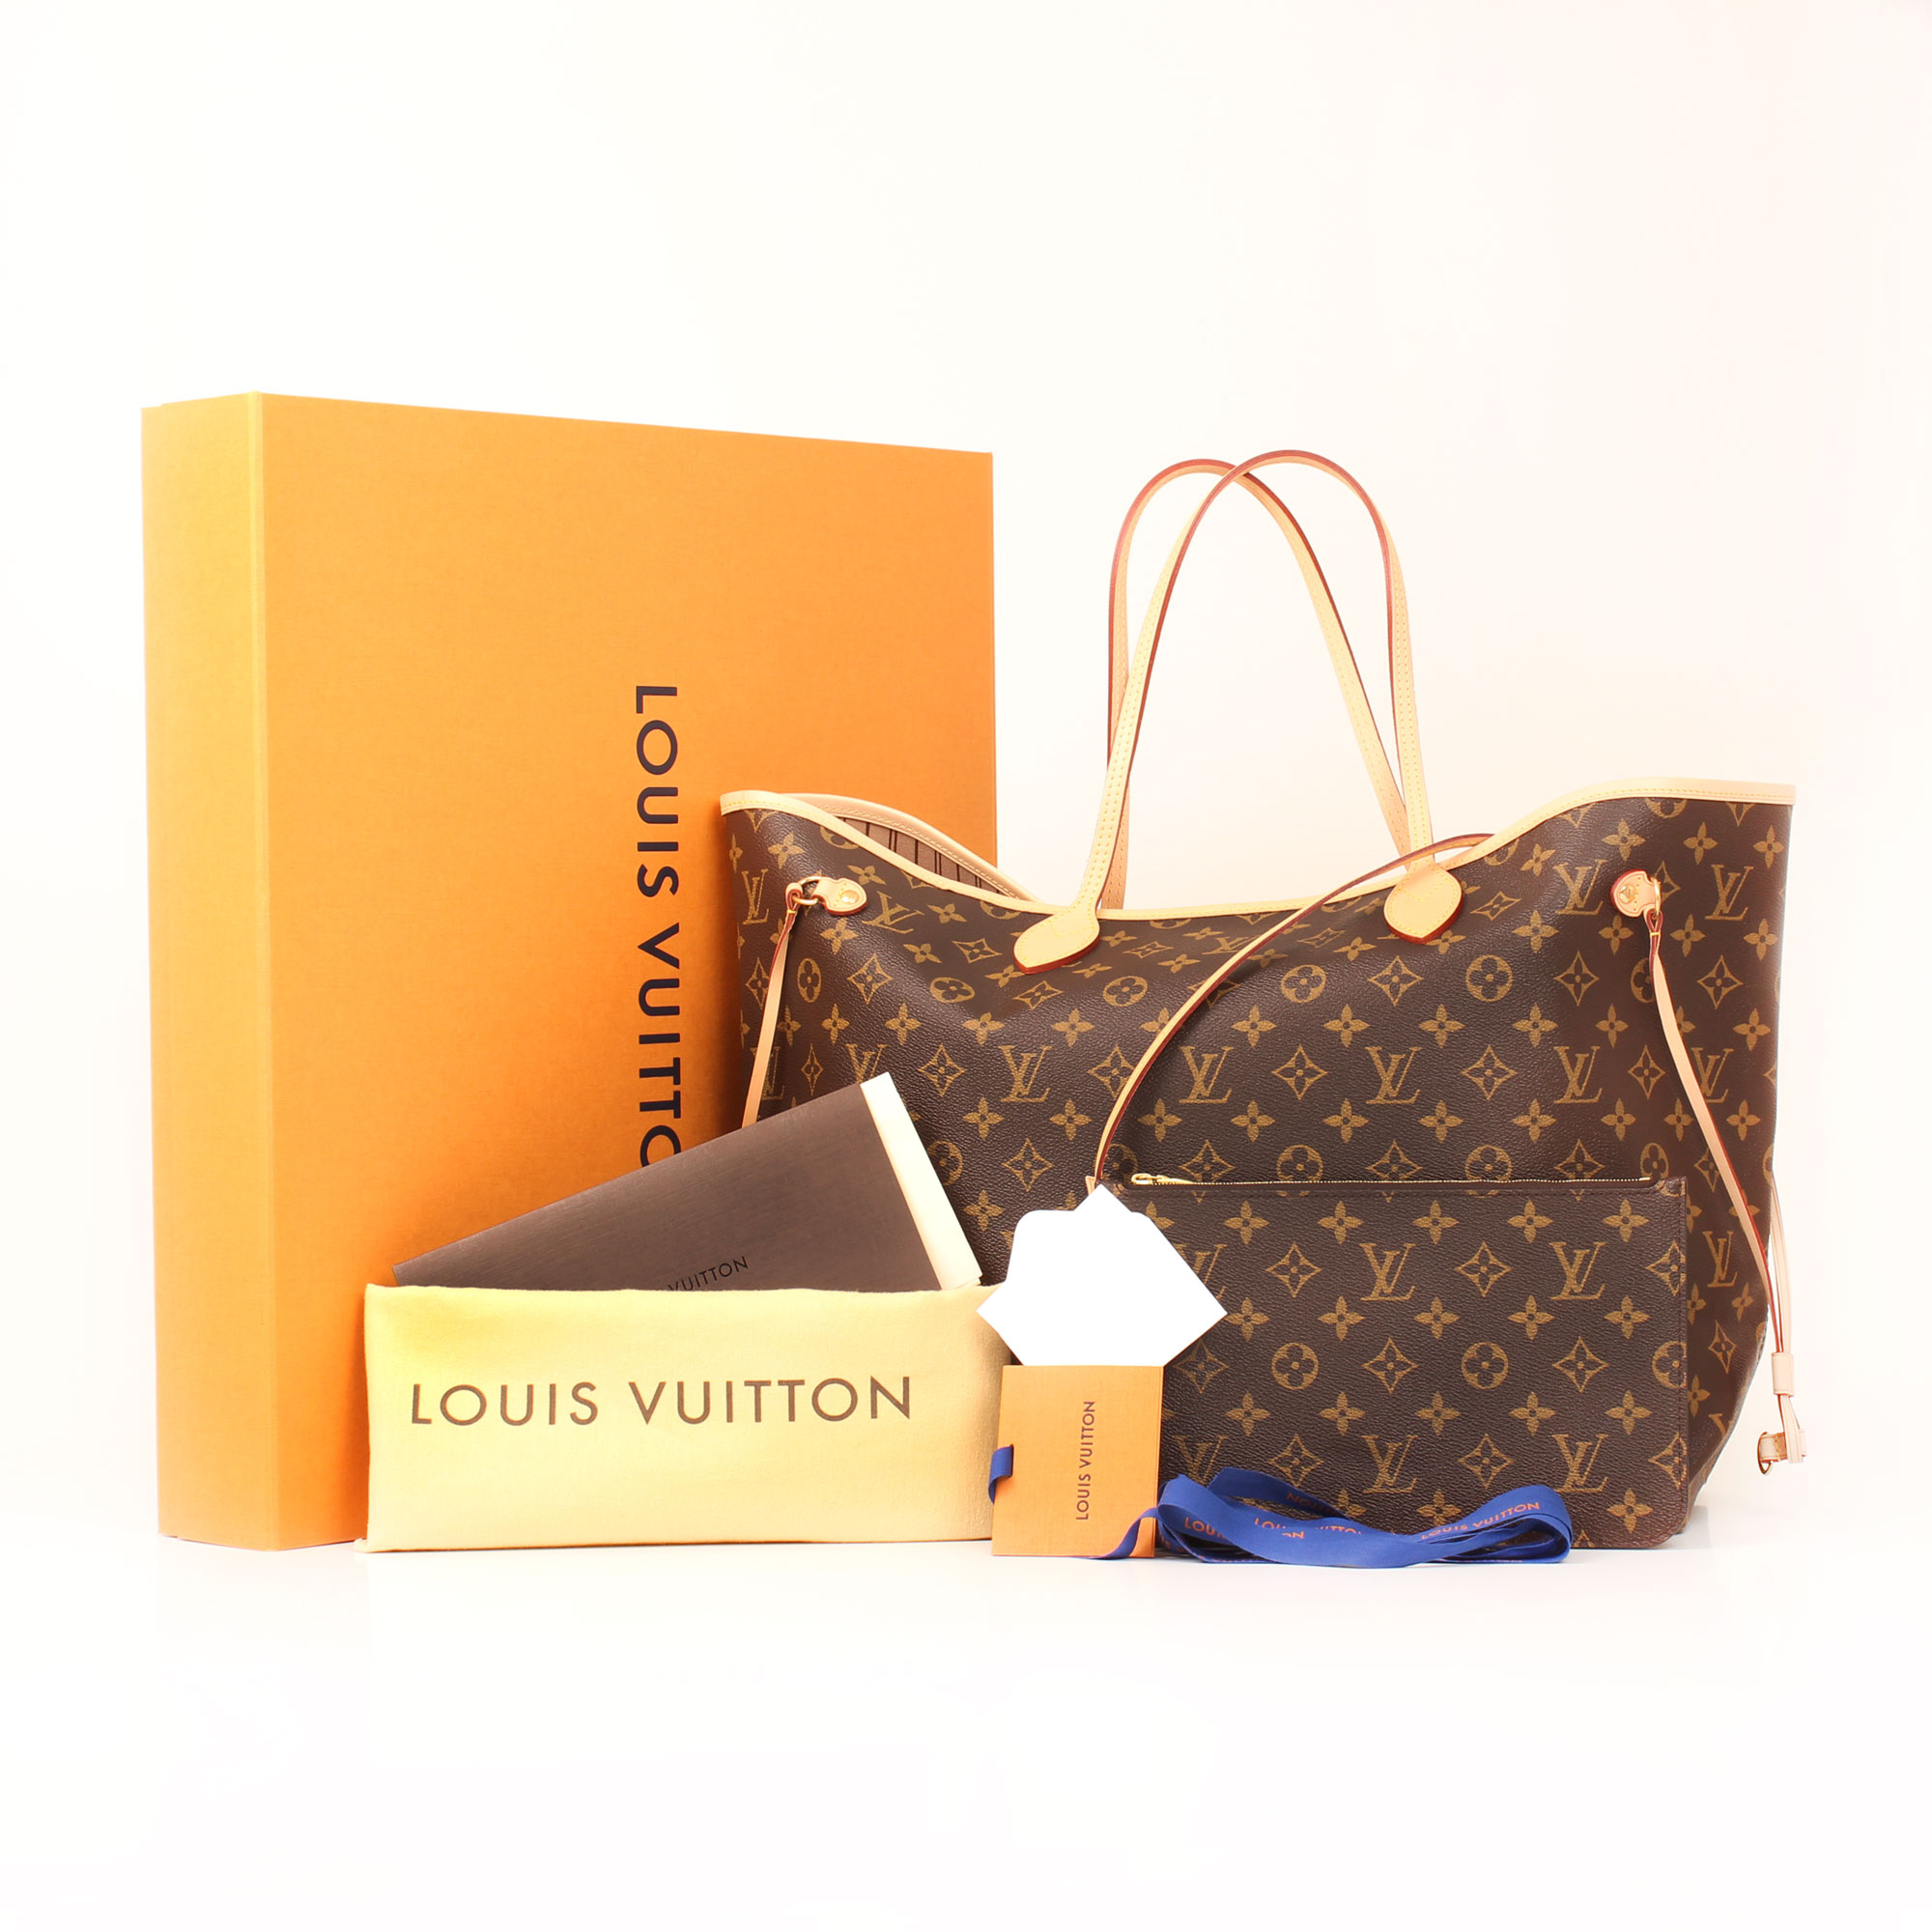 bolso-louis-vuitton-neverfull-gm-monogram-nuevo-completo